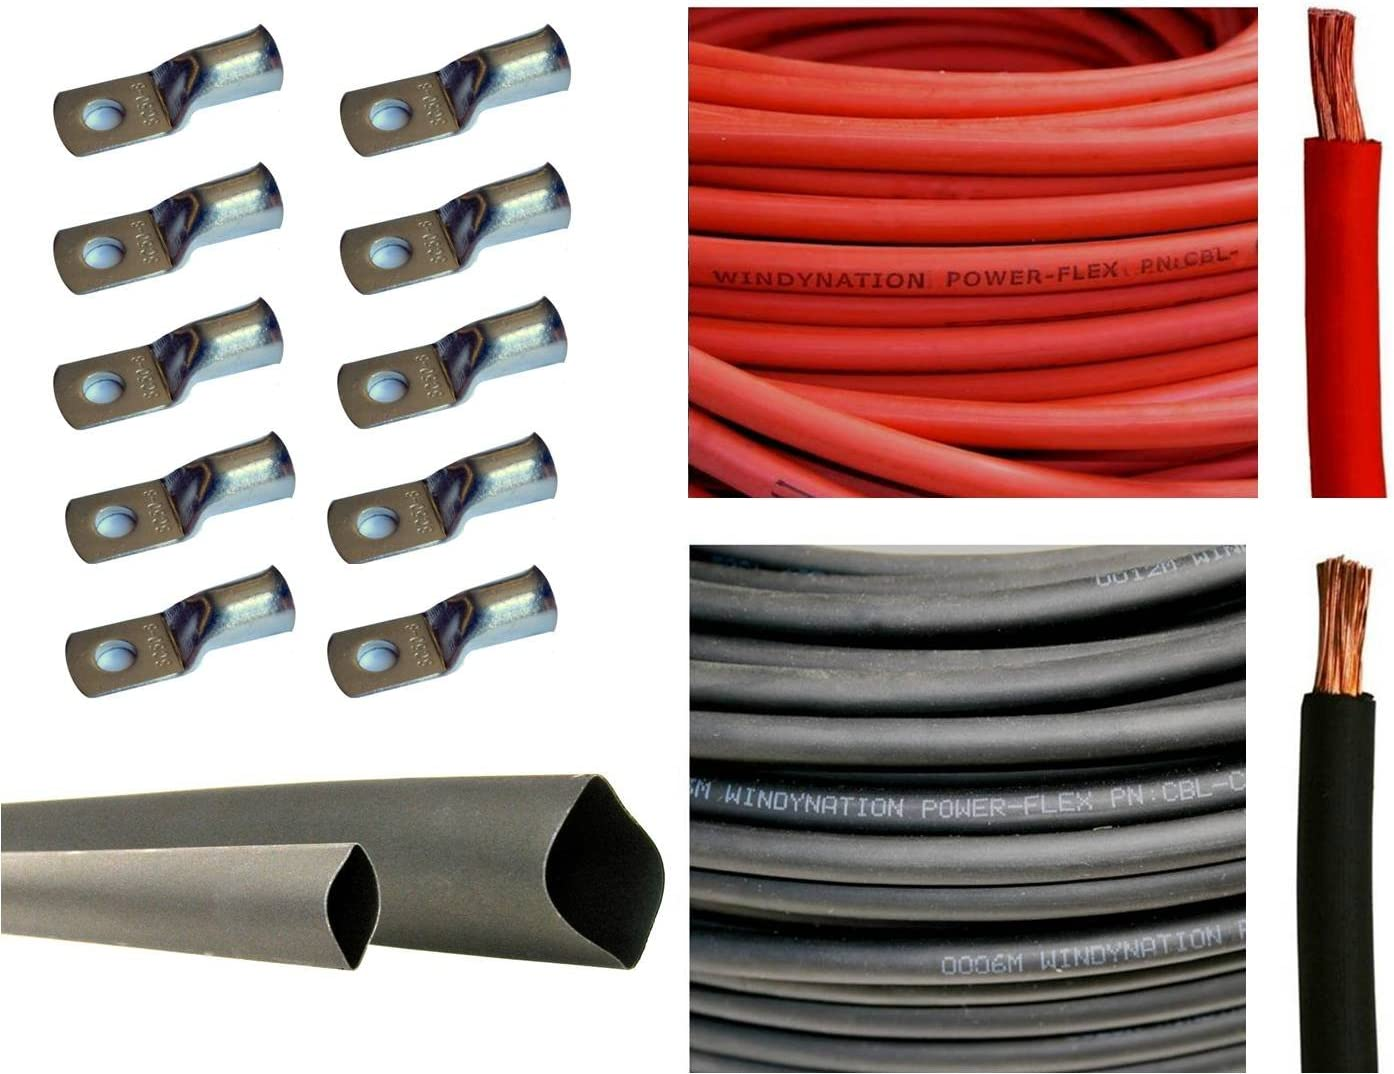 """1/0 Gauge 1/0 AWG 25 Feet Red + 25 Feet Black Welding Battery Pure Copper Flexible Cable + 10pcs of 3/8"""" Tinned Copper Cable Lug Terminal Connectors + 3 Feet Black Heat Shrink Tubing"""